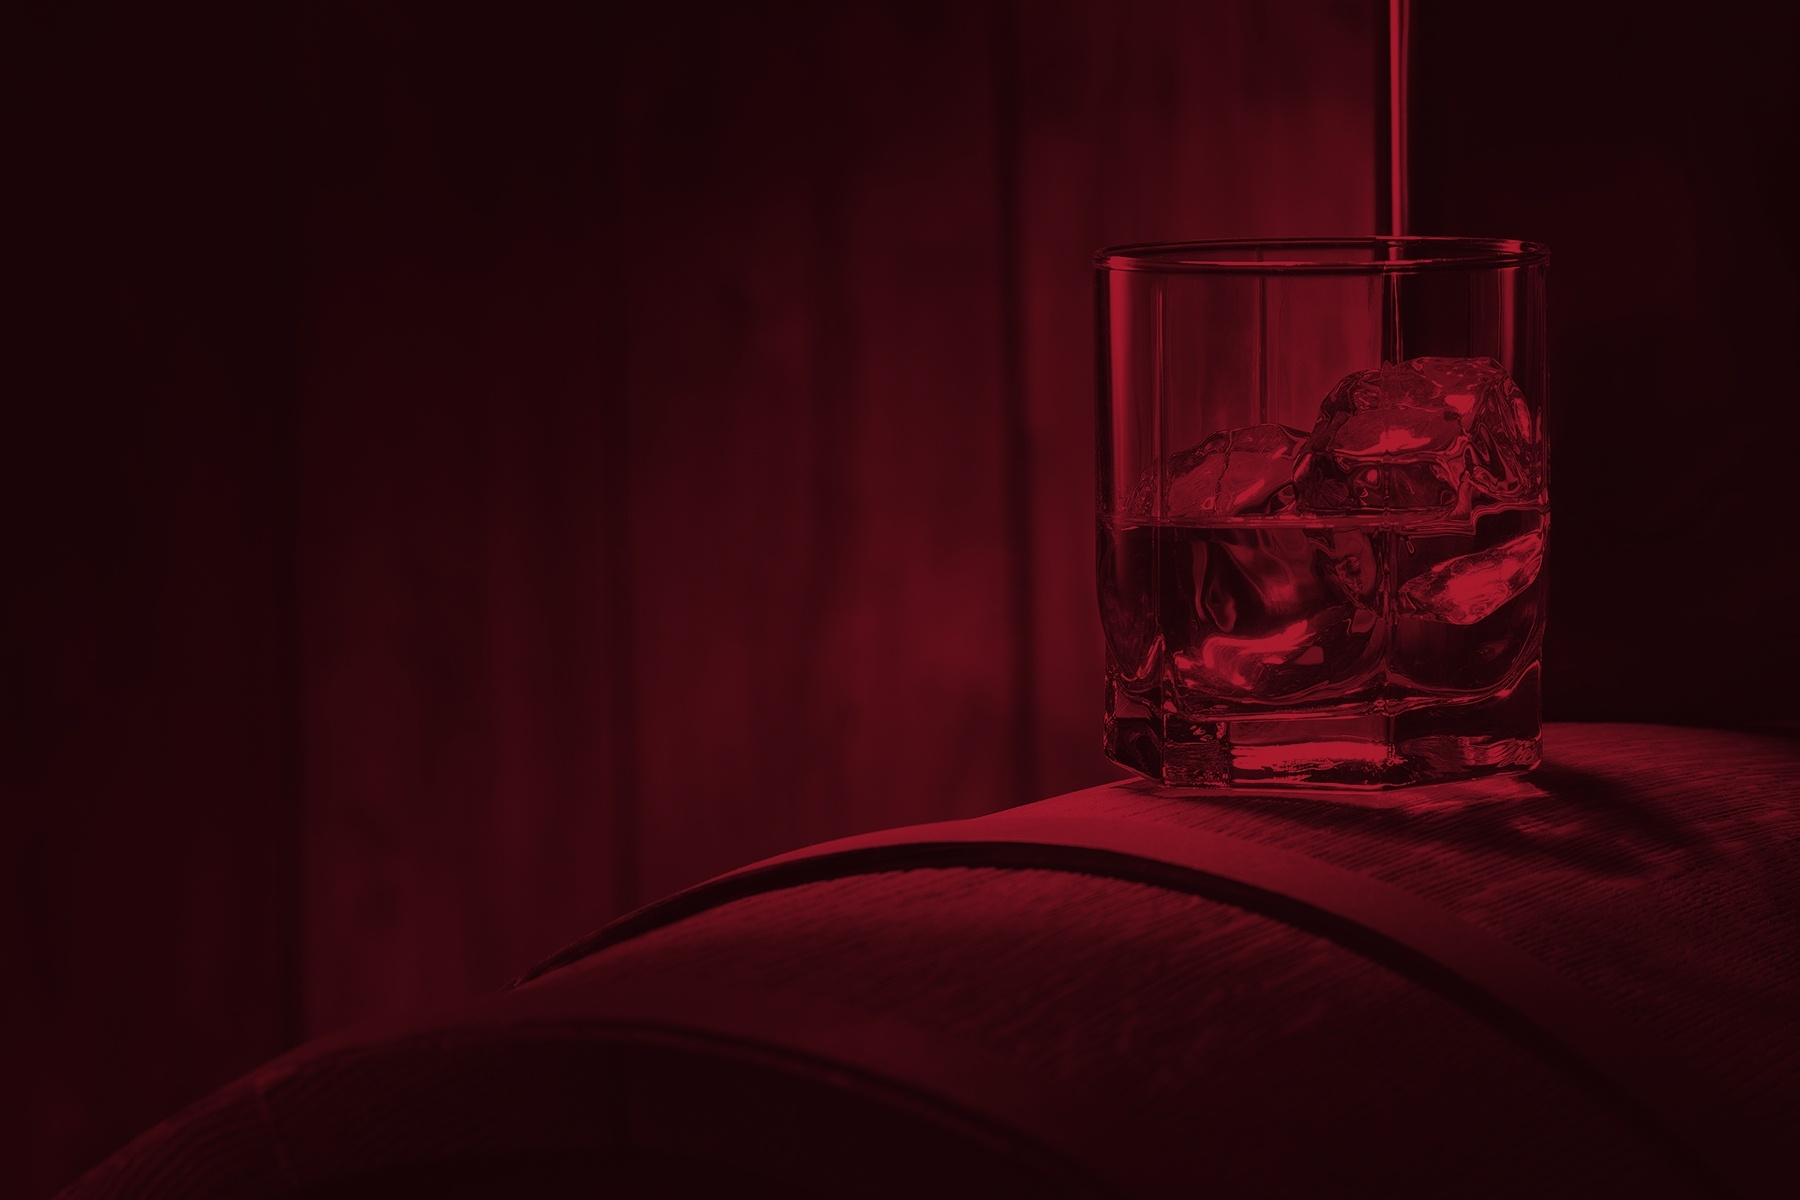 alcohol and ice in a rocks glass on top of a wooden barrel with red image overlay